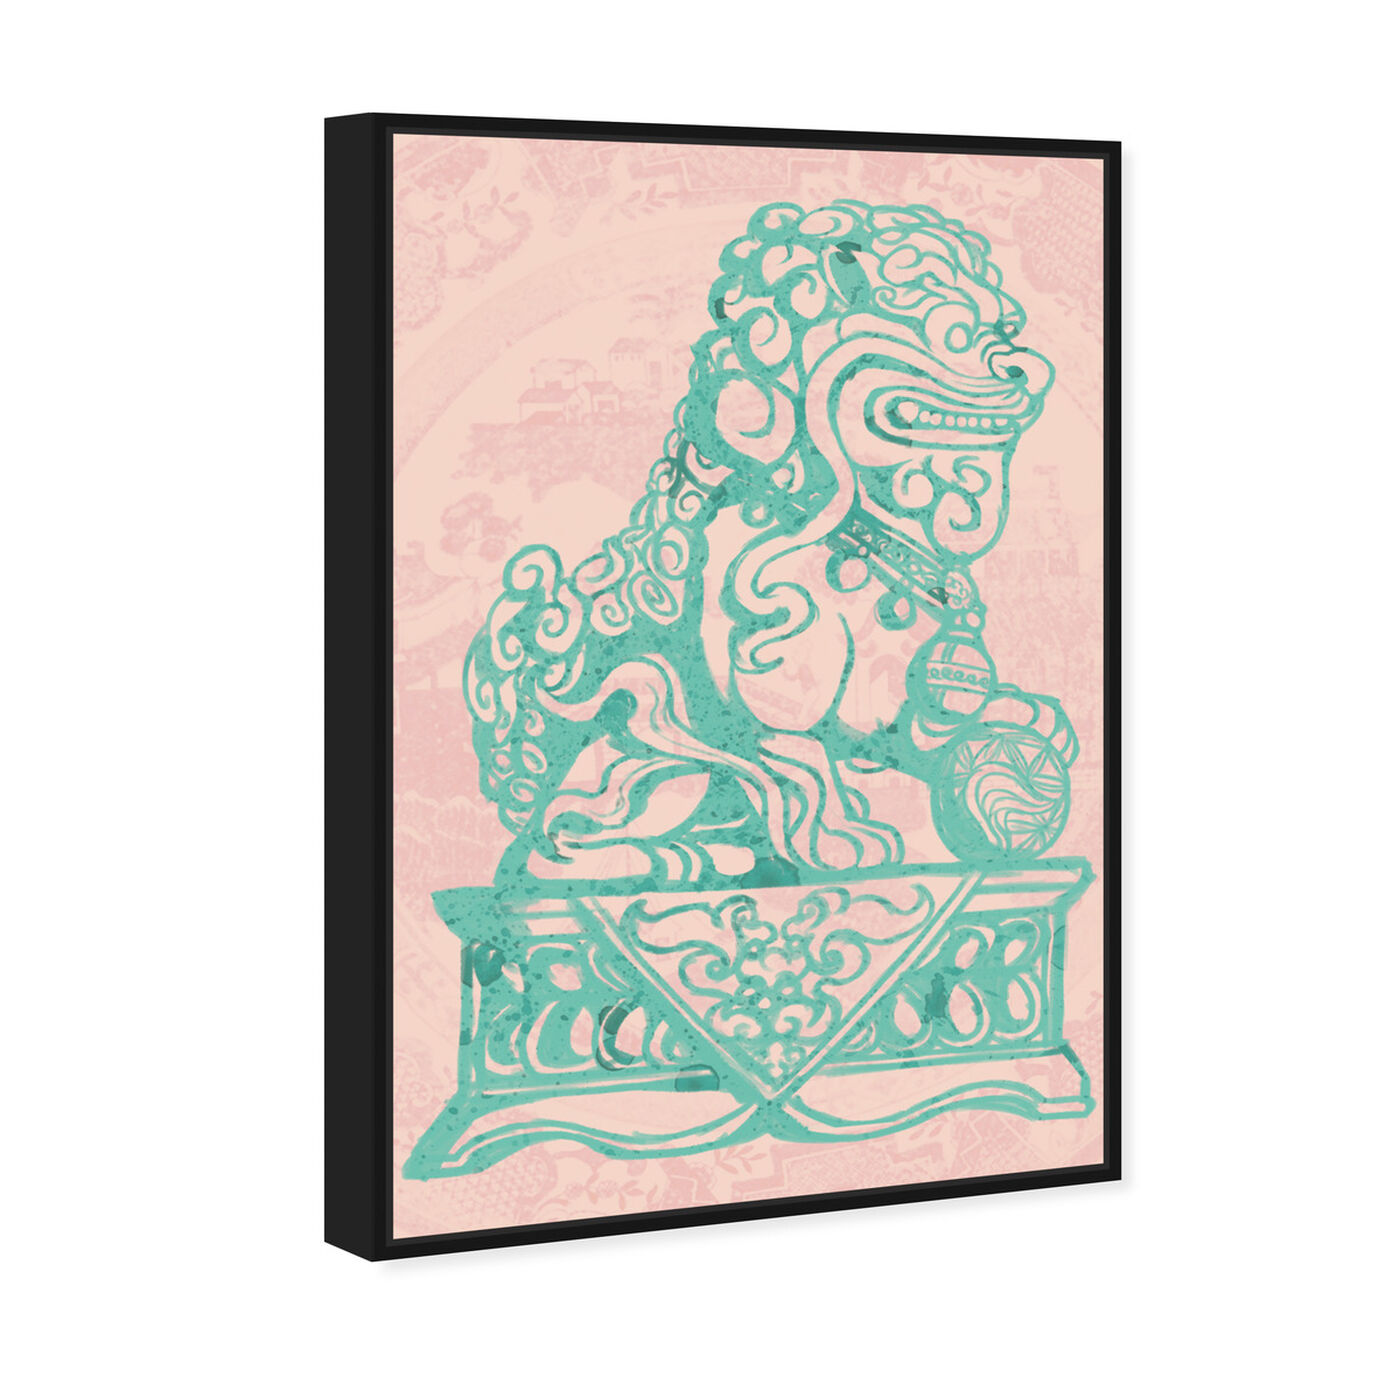 Angled view of Foo Dog Rose featuring world and countries and asian cultures art.